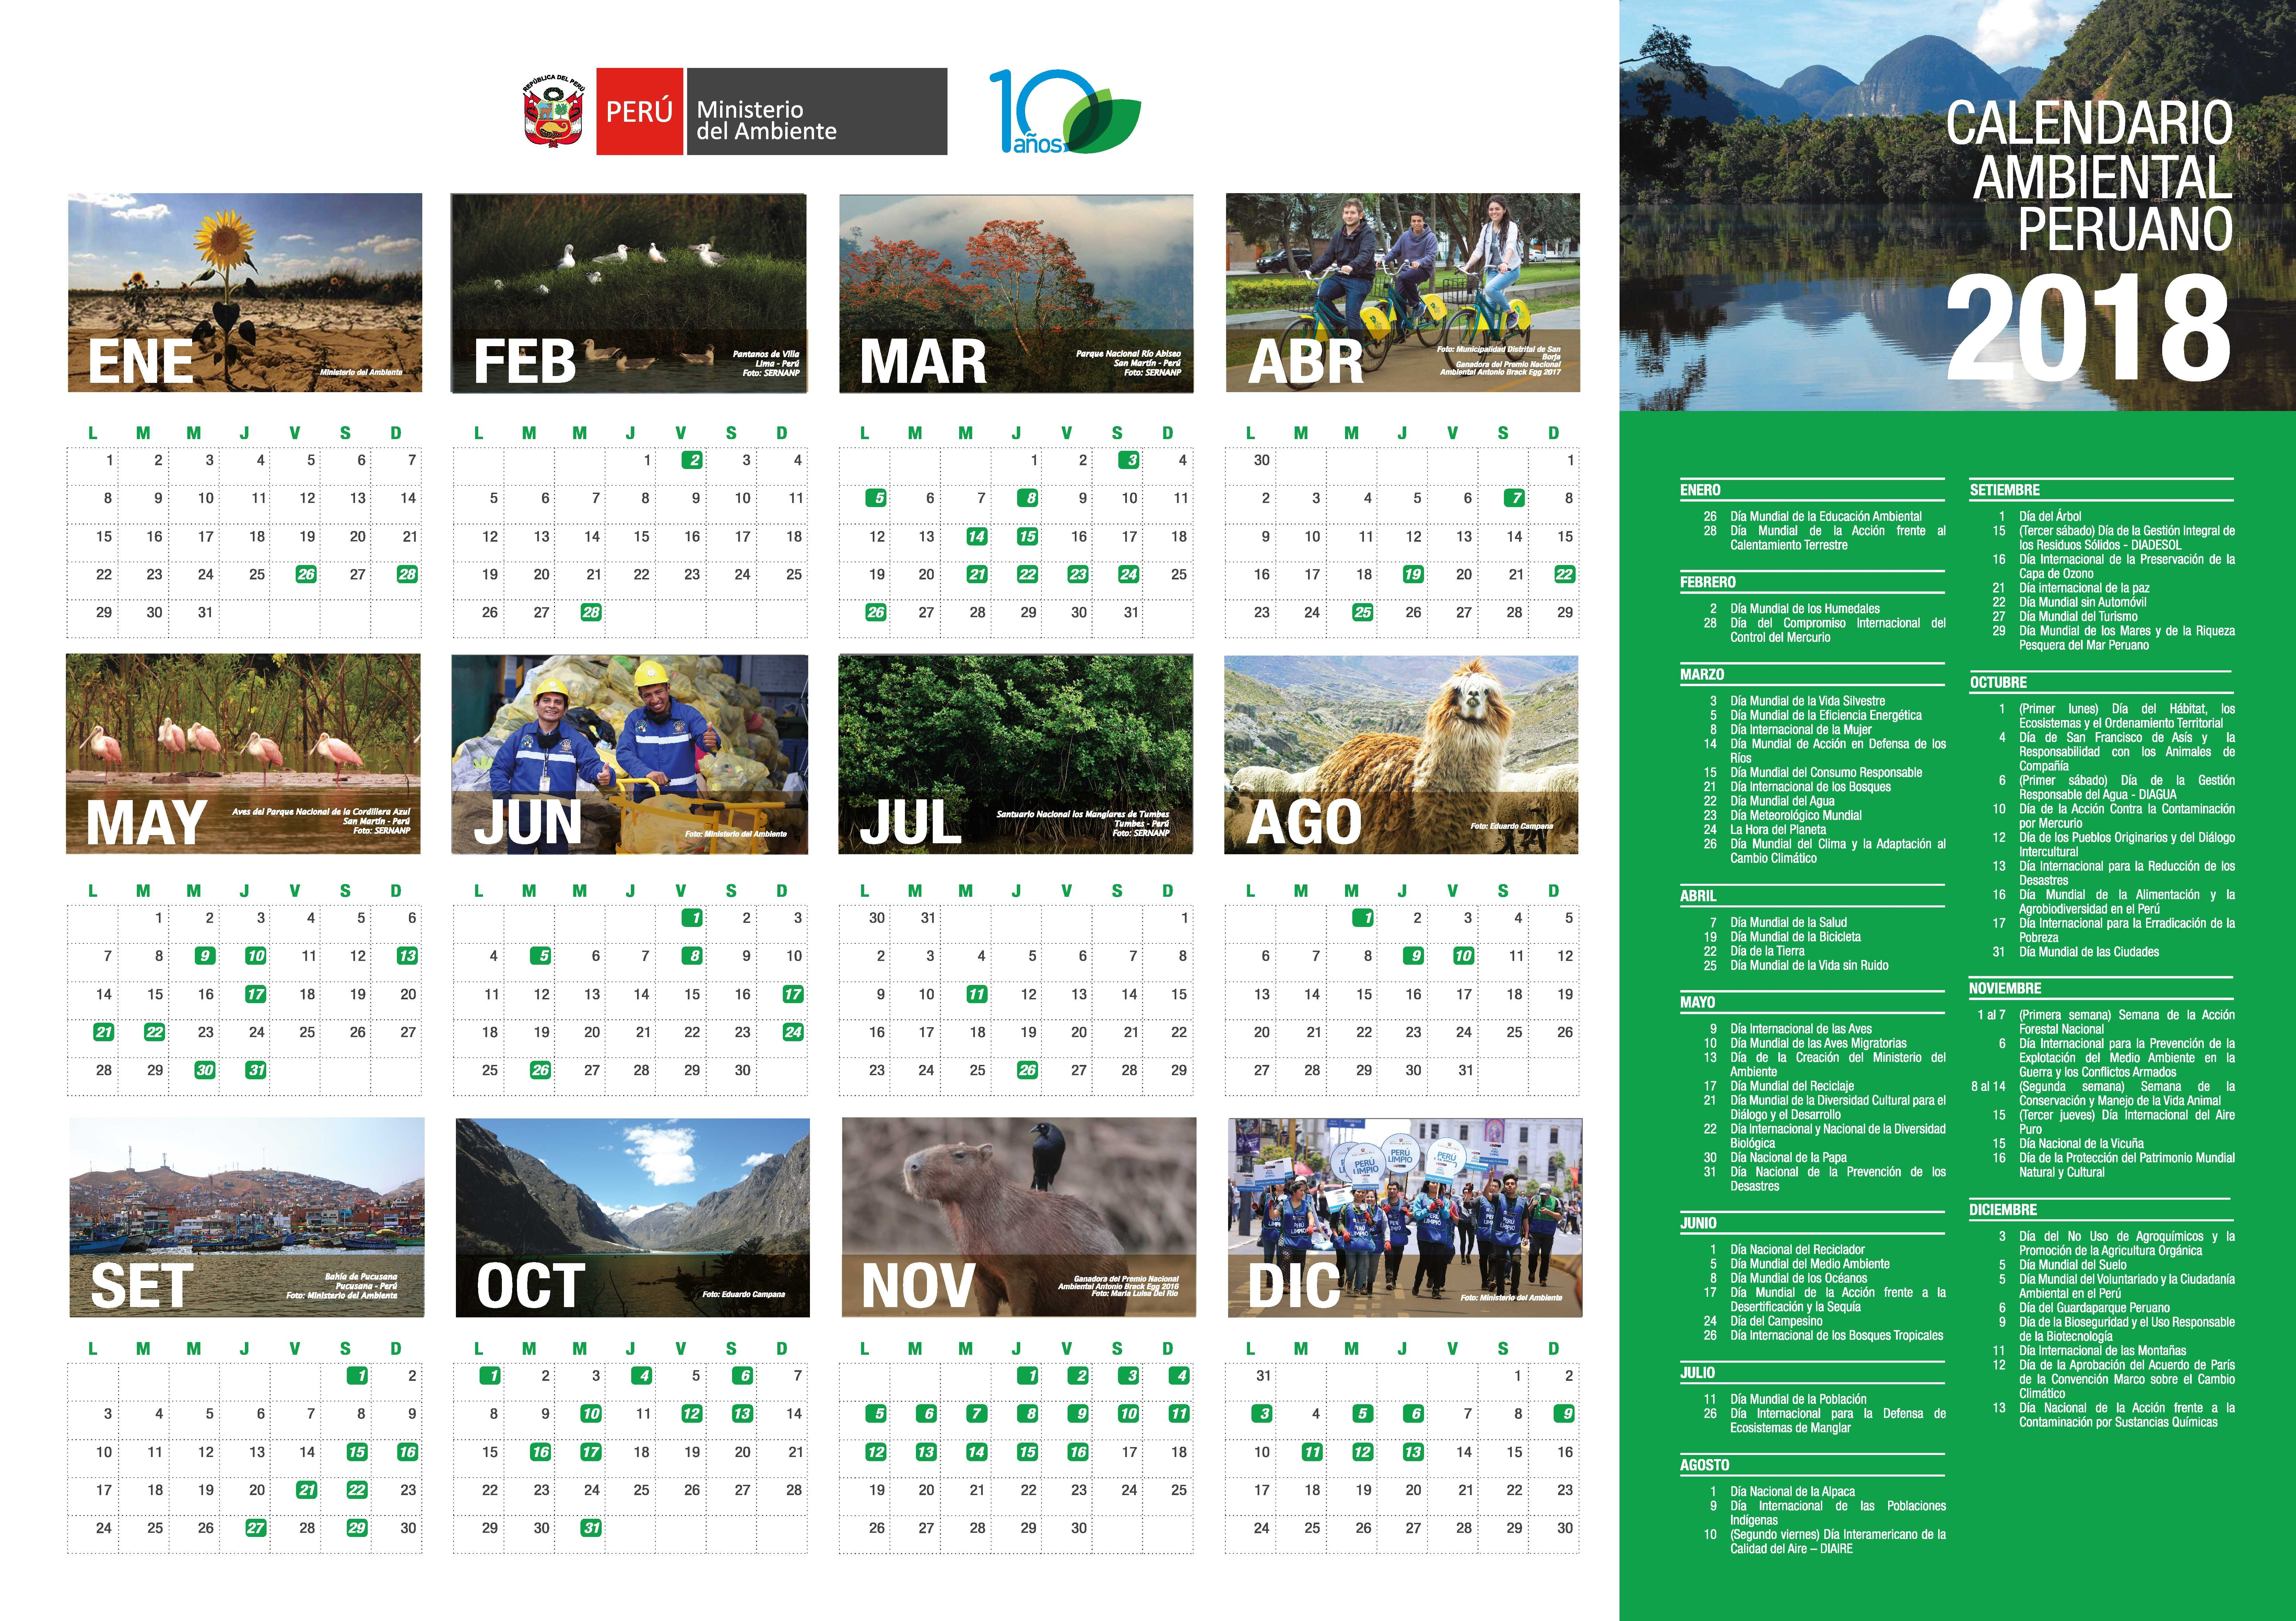 Calendario Abril 2019 Excel Más Populares Calendario Ambiental Of Calendario Abril 2019 Excel Recientes Calendario Julio 2019 Papeler­a Pinterest